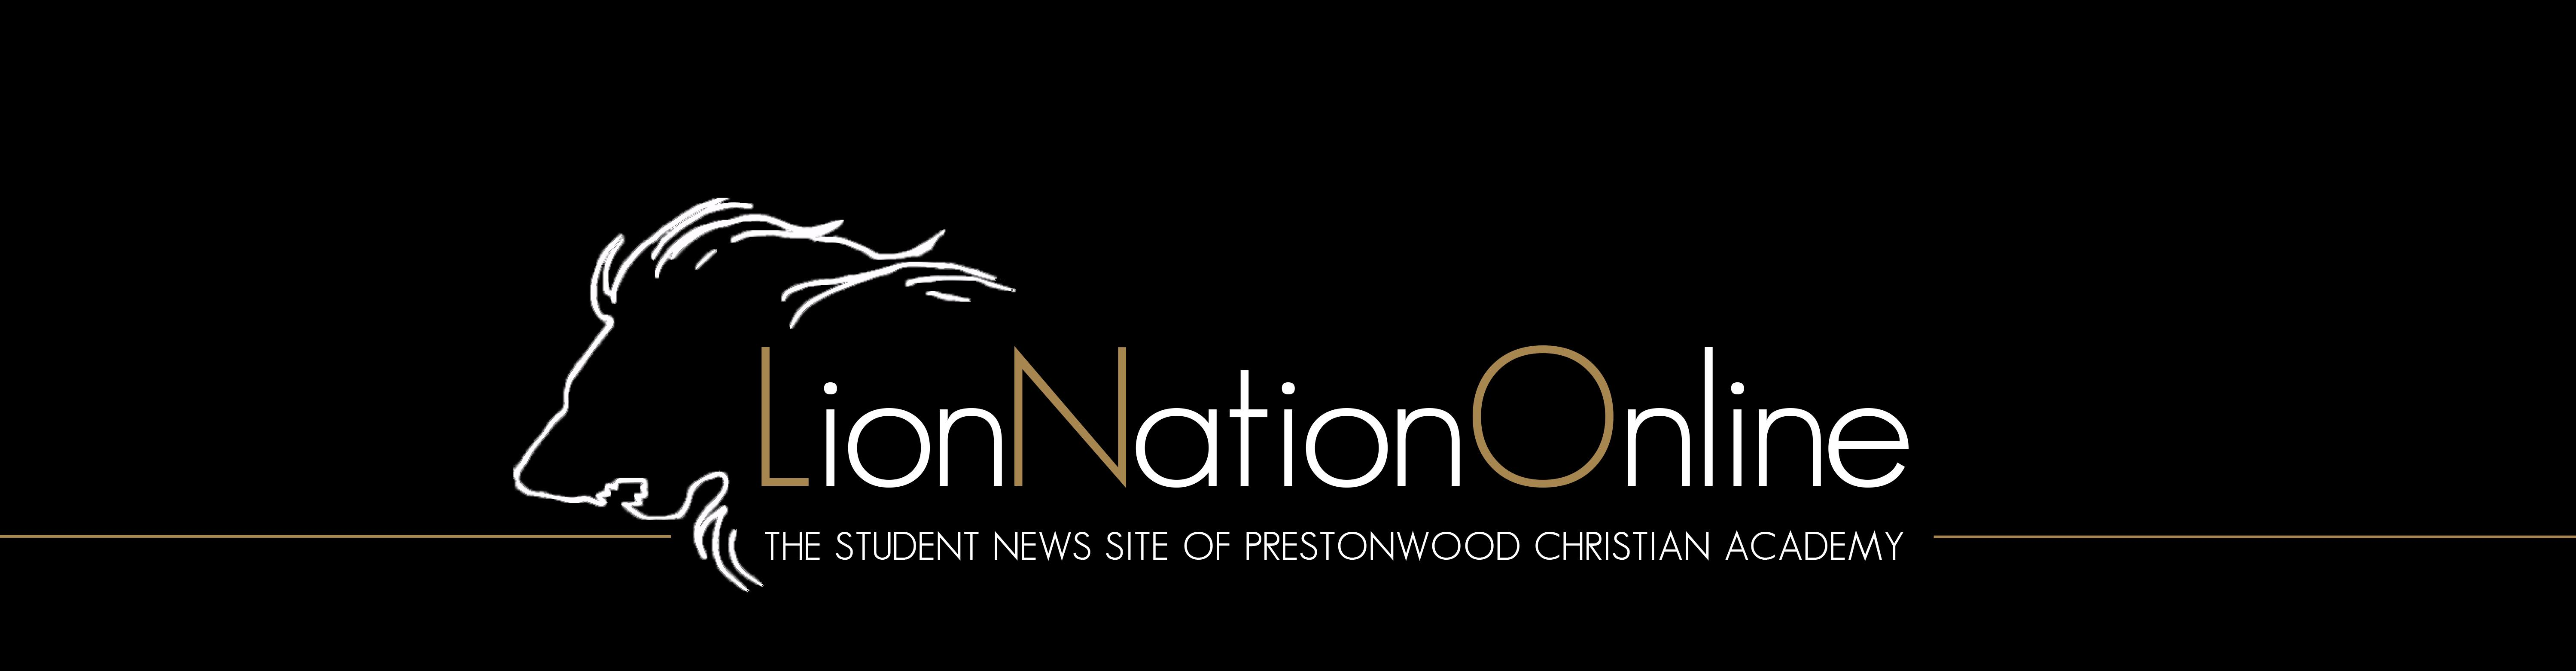 The student news site of Prestonwood Christian Academy